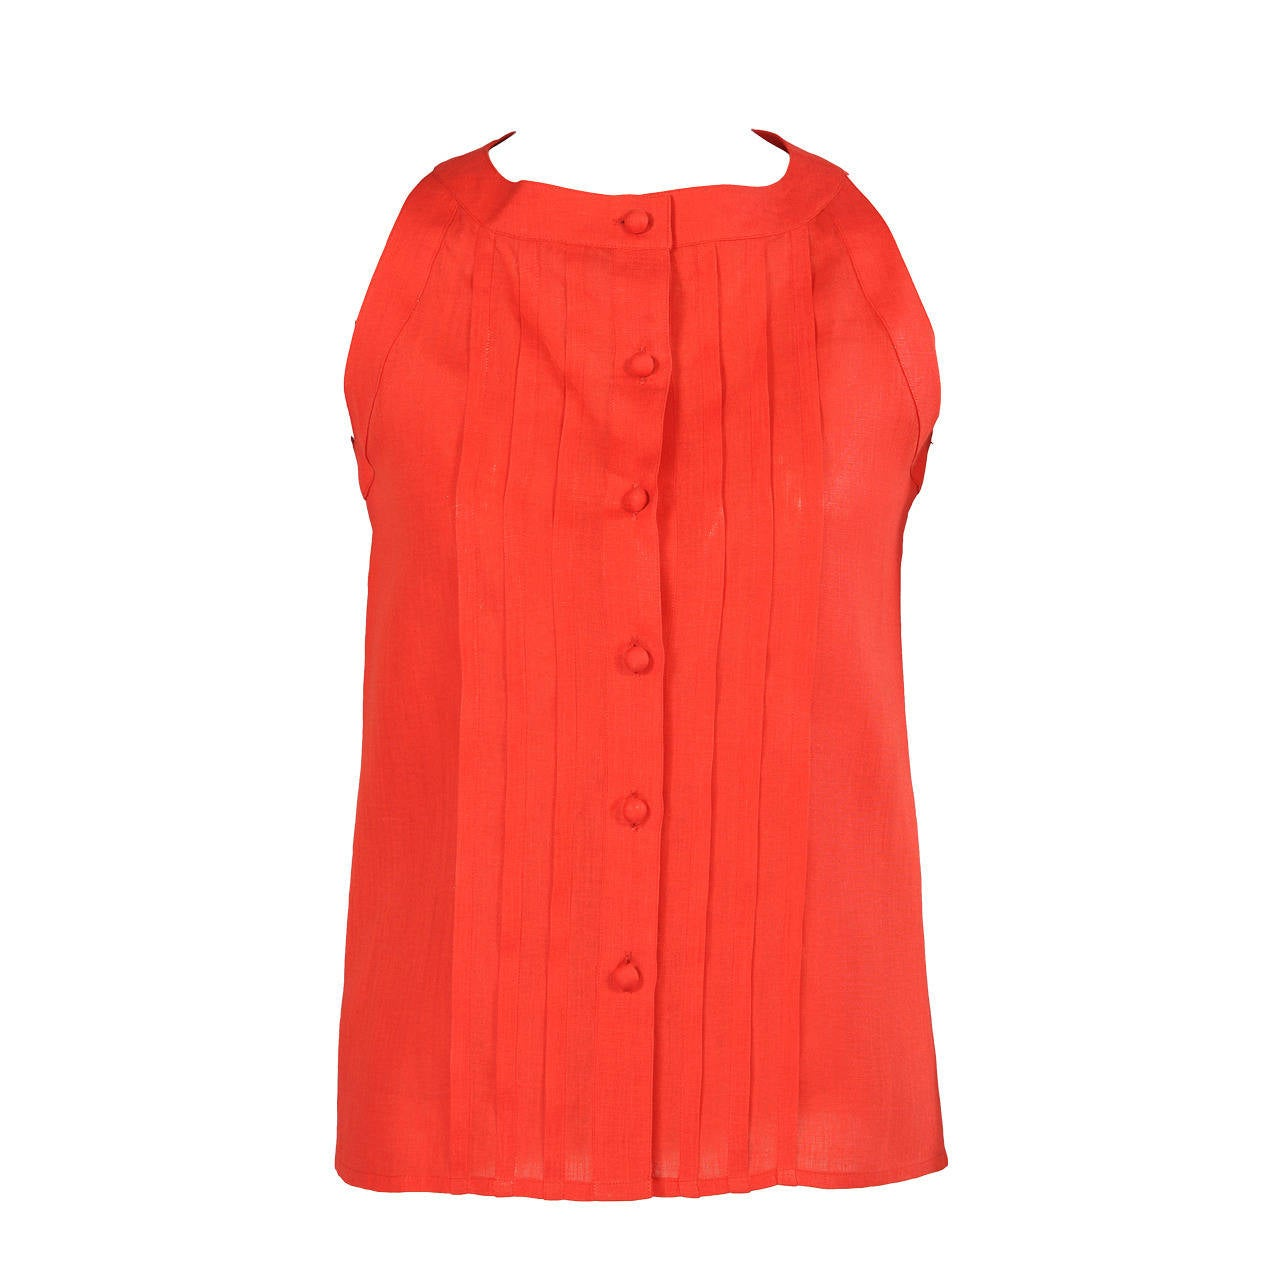 Chanel Red Linen Blouse with Pin Tucks For Sale